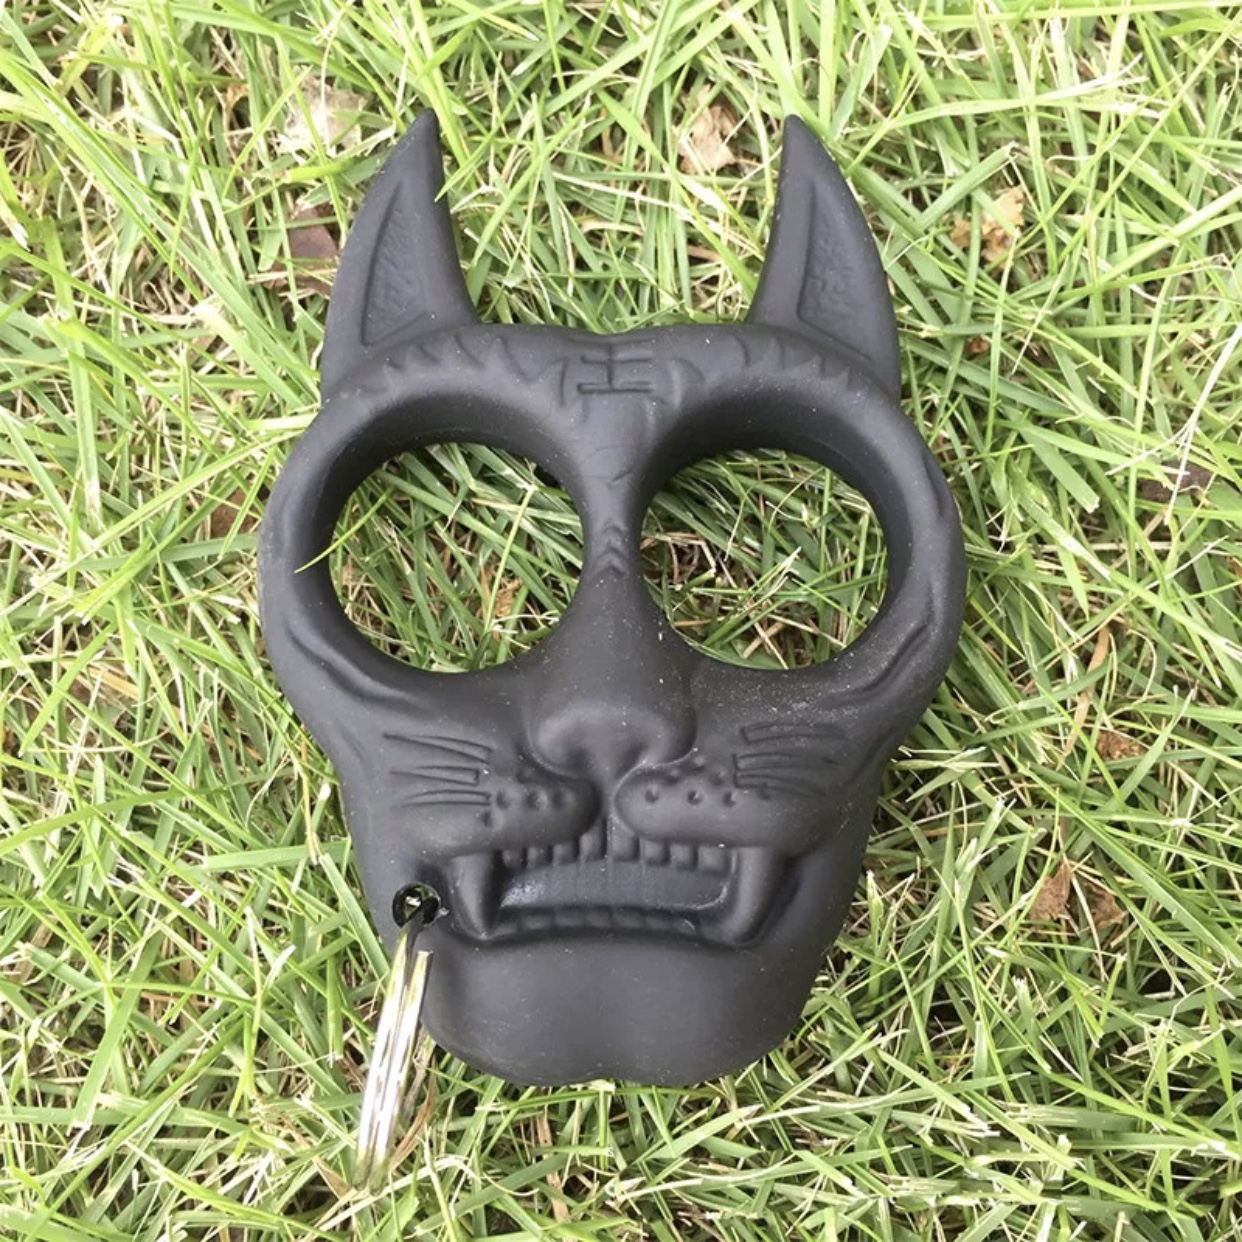 Black Cat Self Defense Keychain Brand New Made Depop